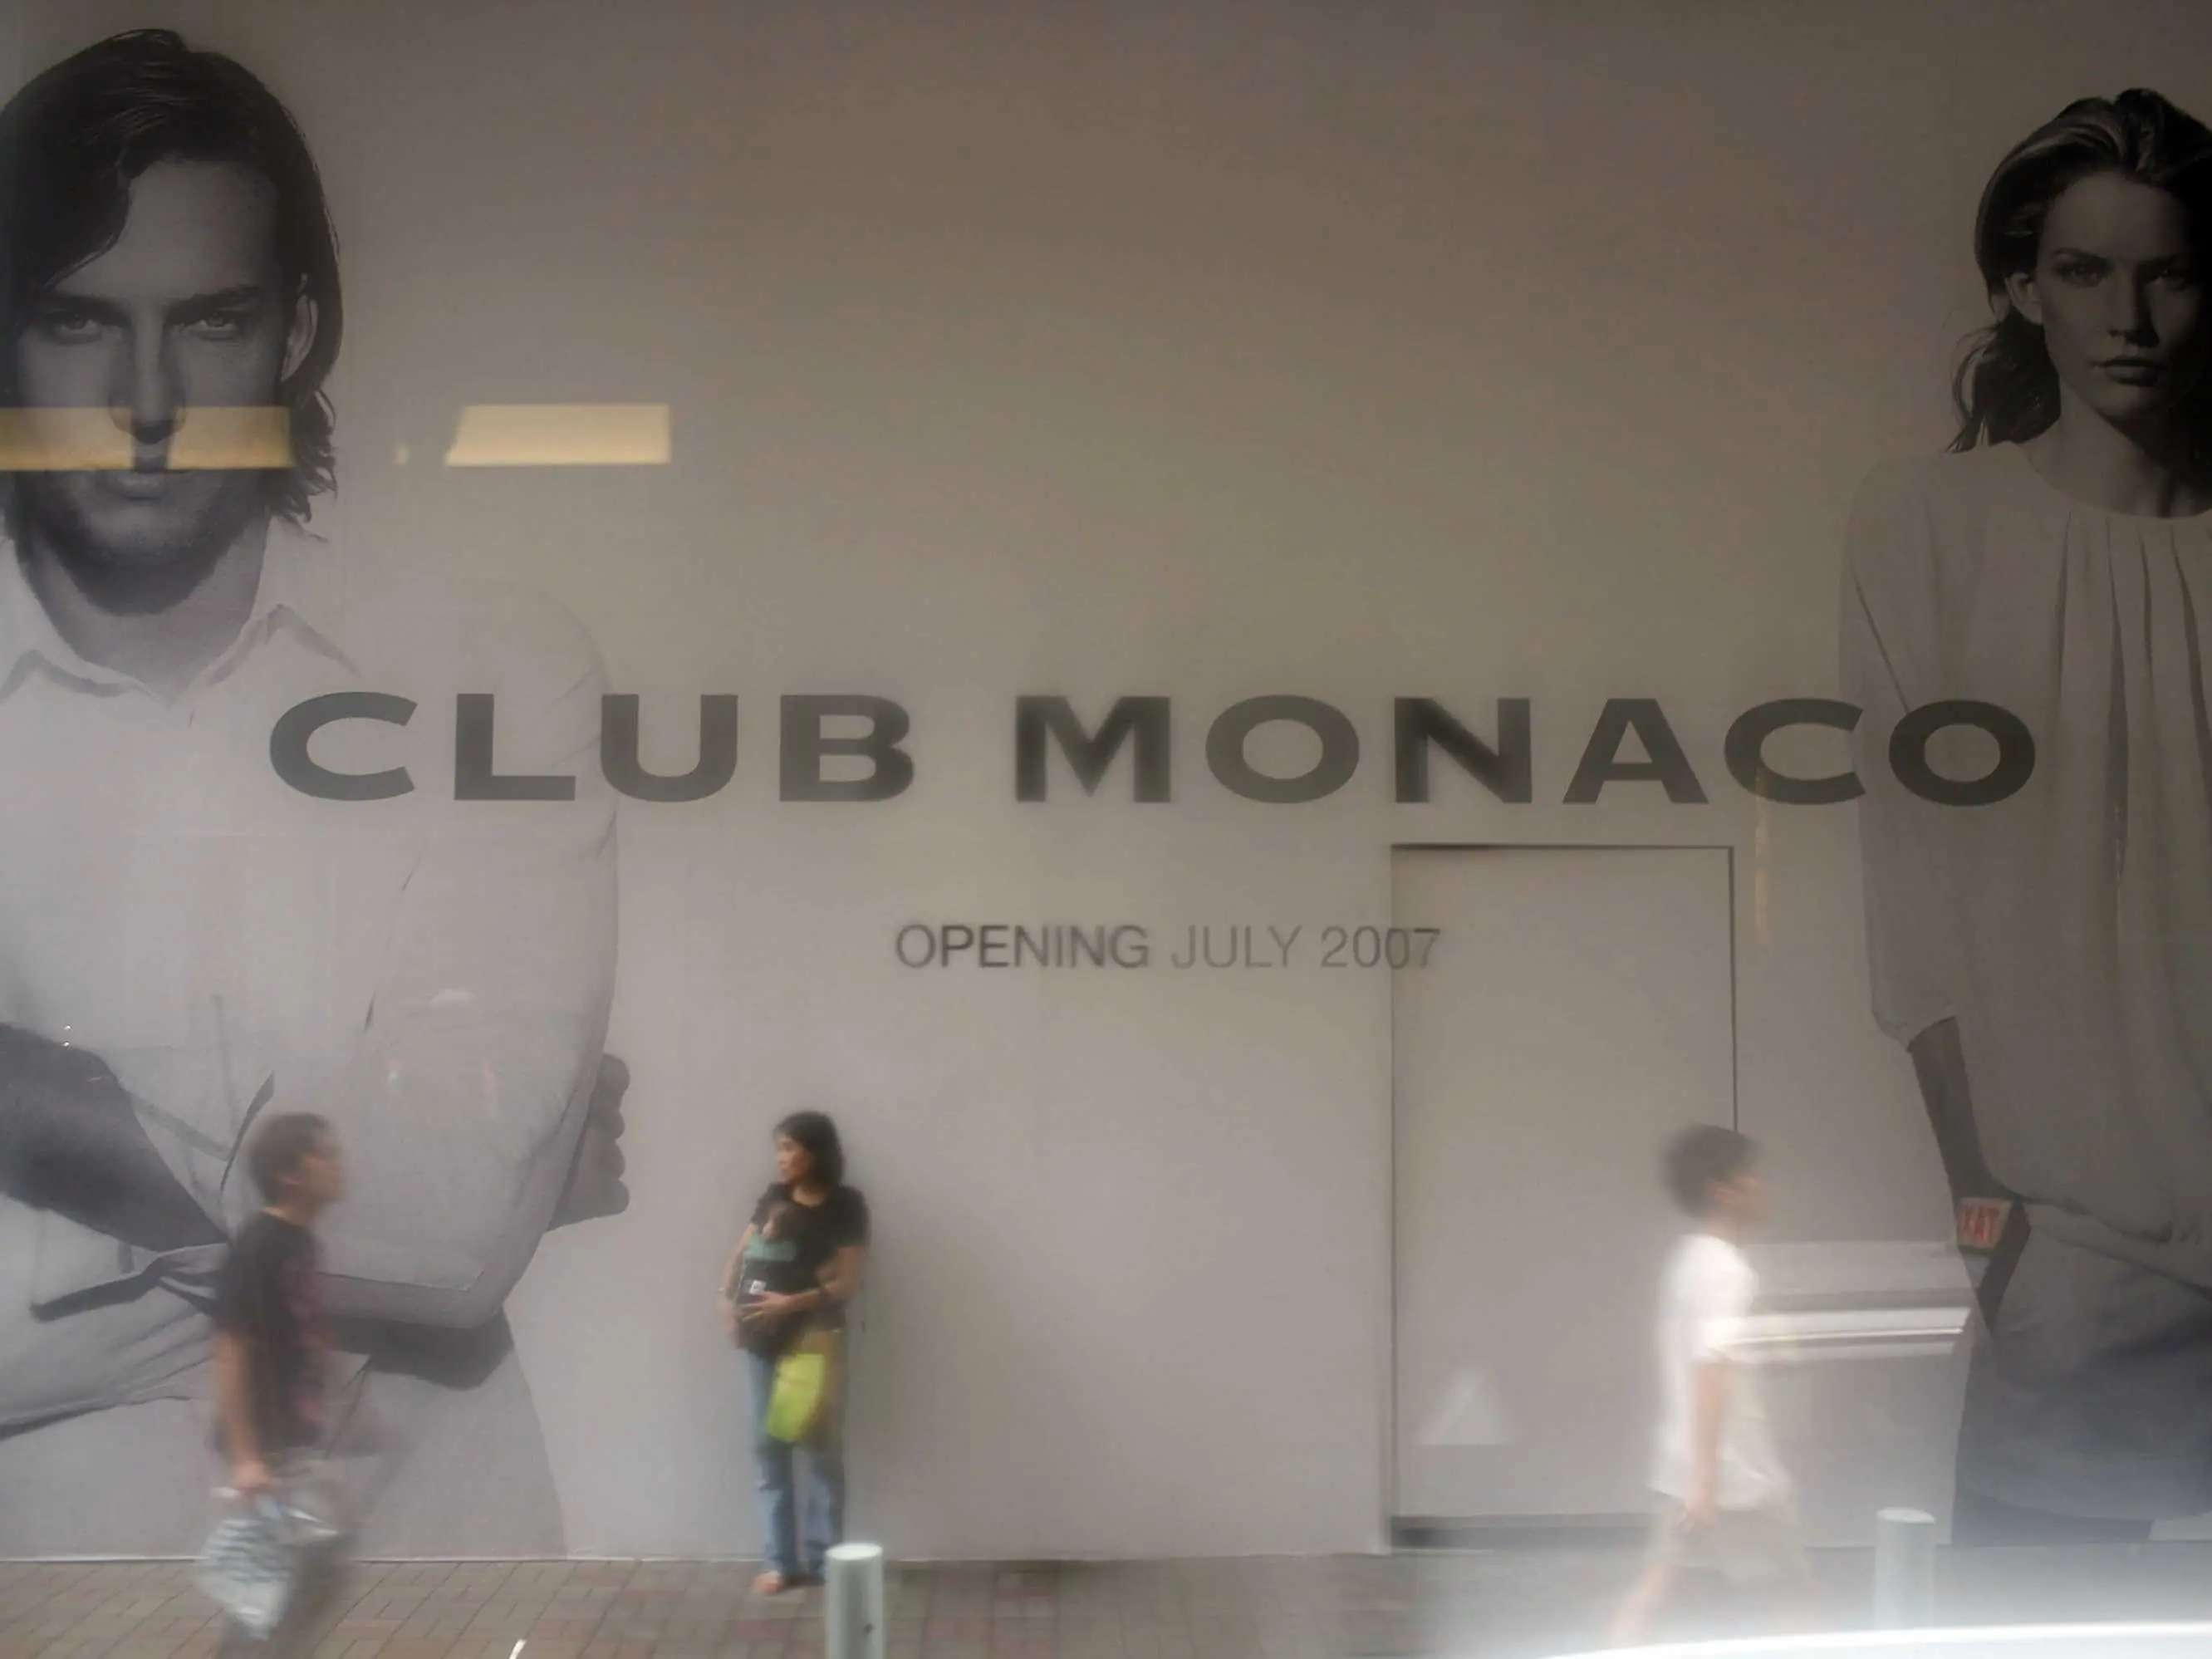 Mimran was also behind the launch of the Club Monaco brand.